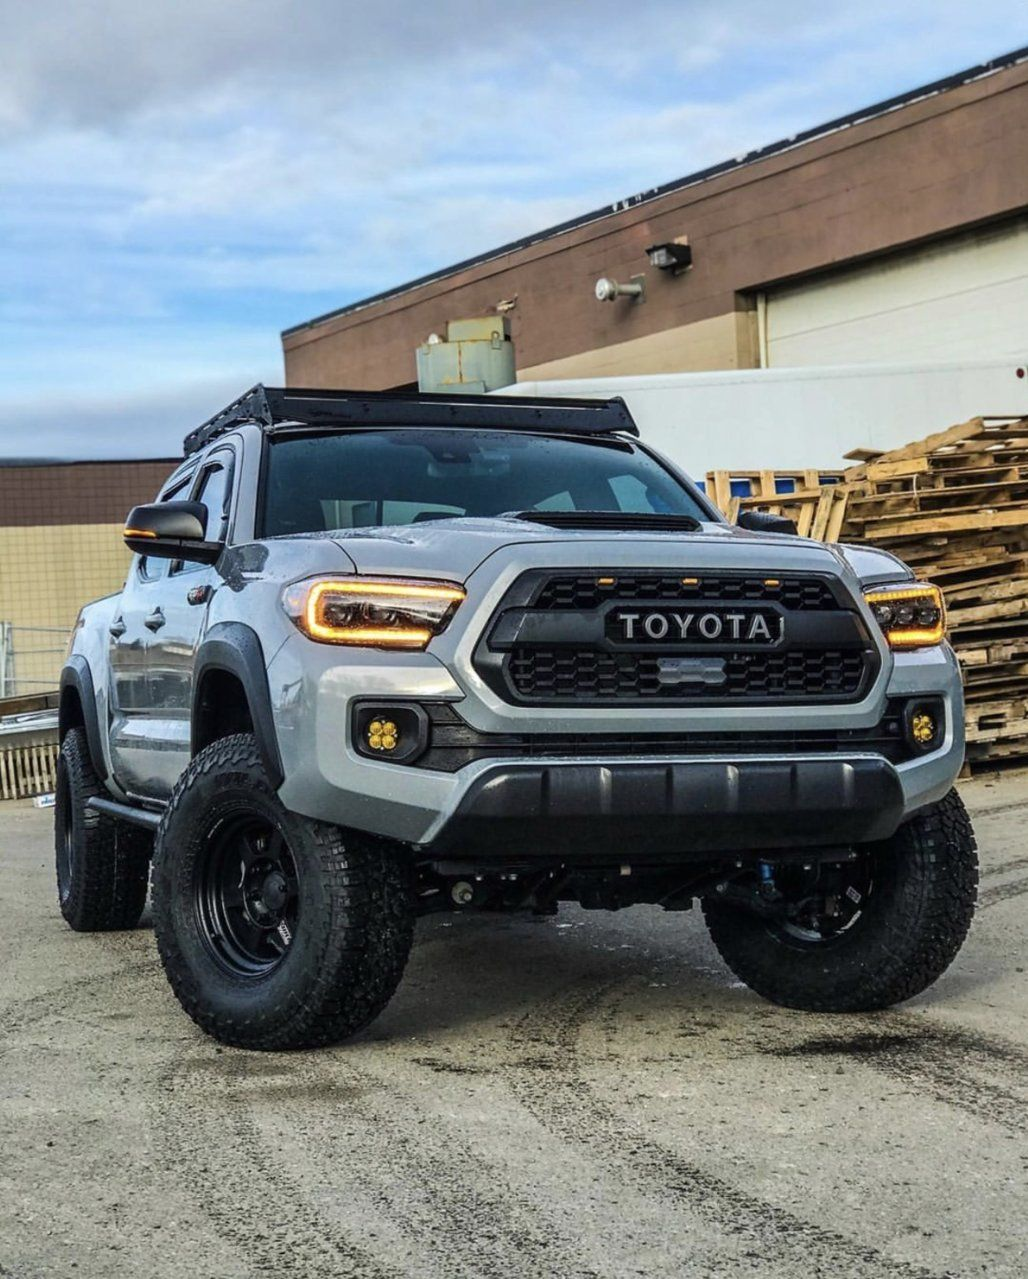 Pin by Alex G on in 2020 truck, Toyota